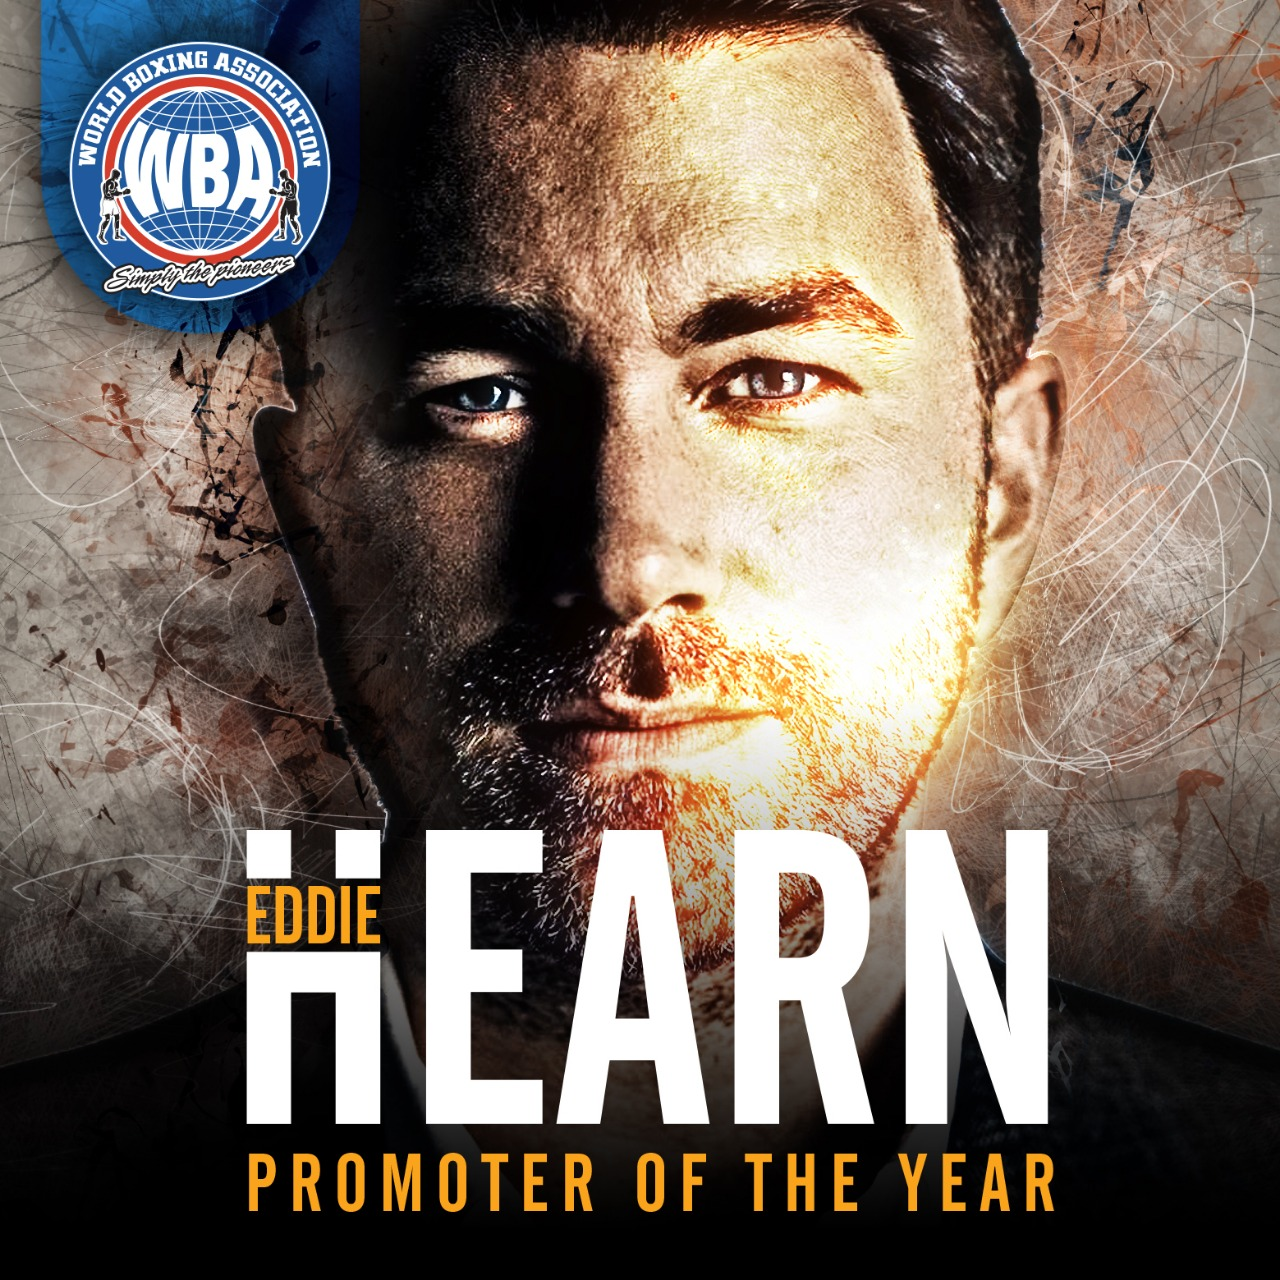 Matchroom Boxing appointed Promoter of the year by the WBA